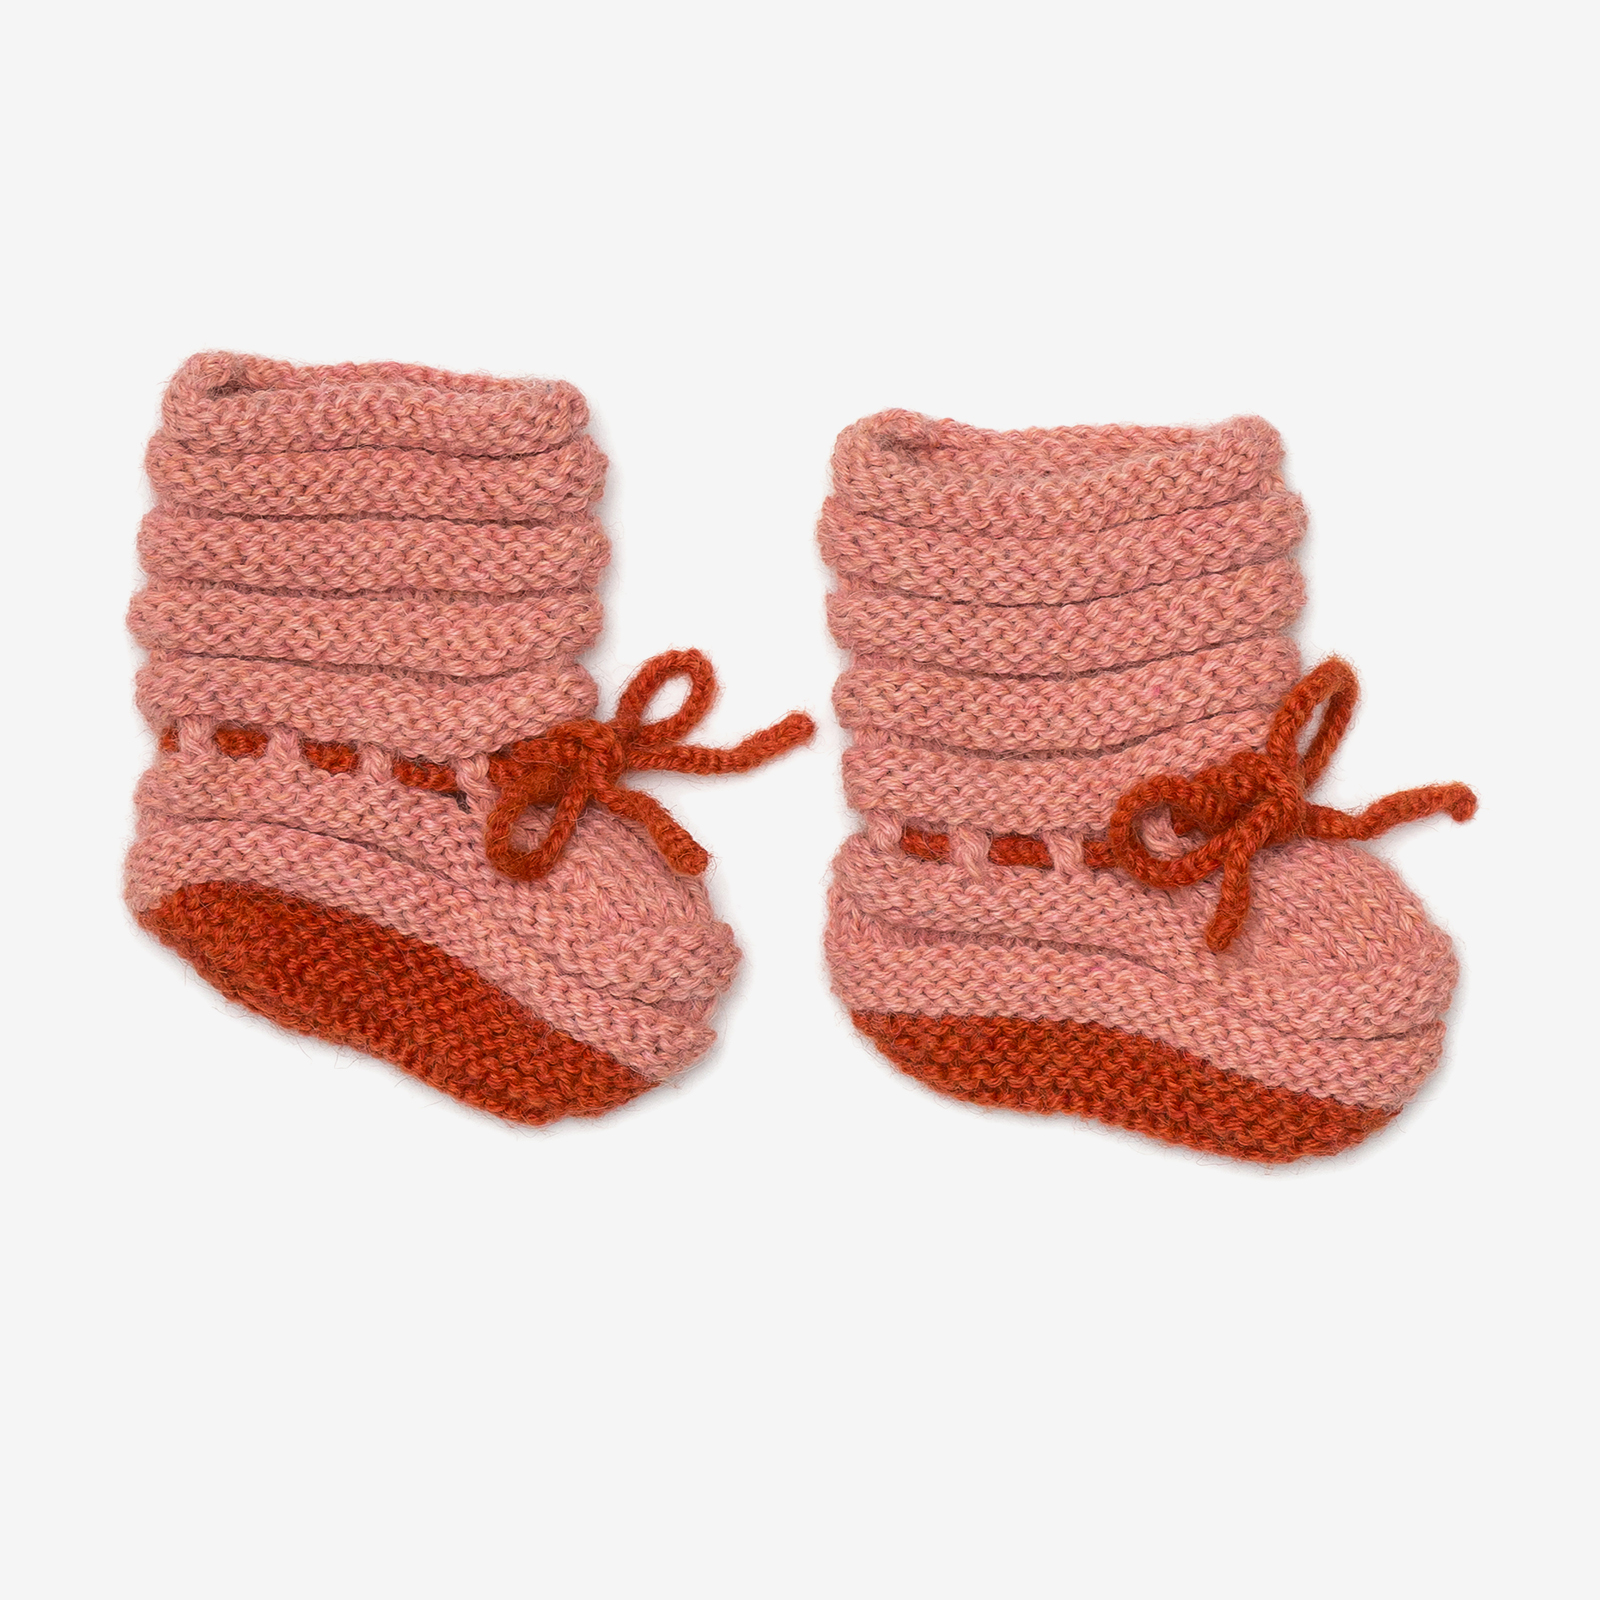 Knit booties product image